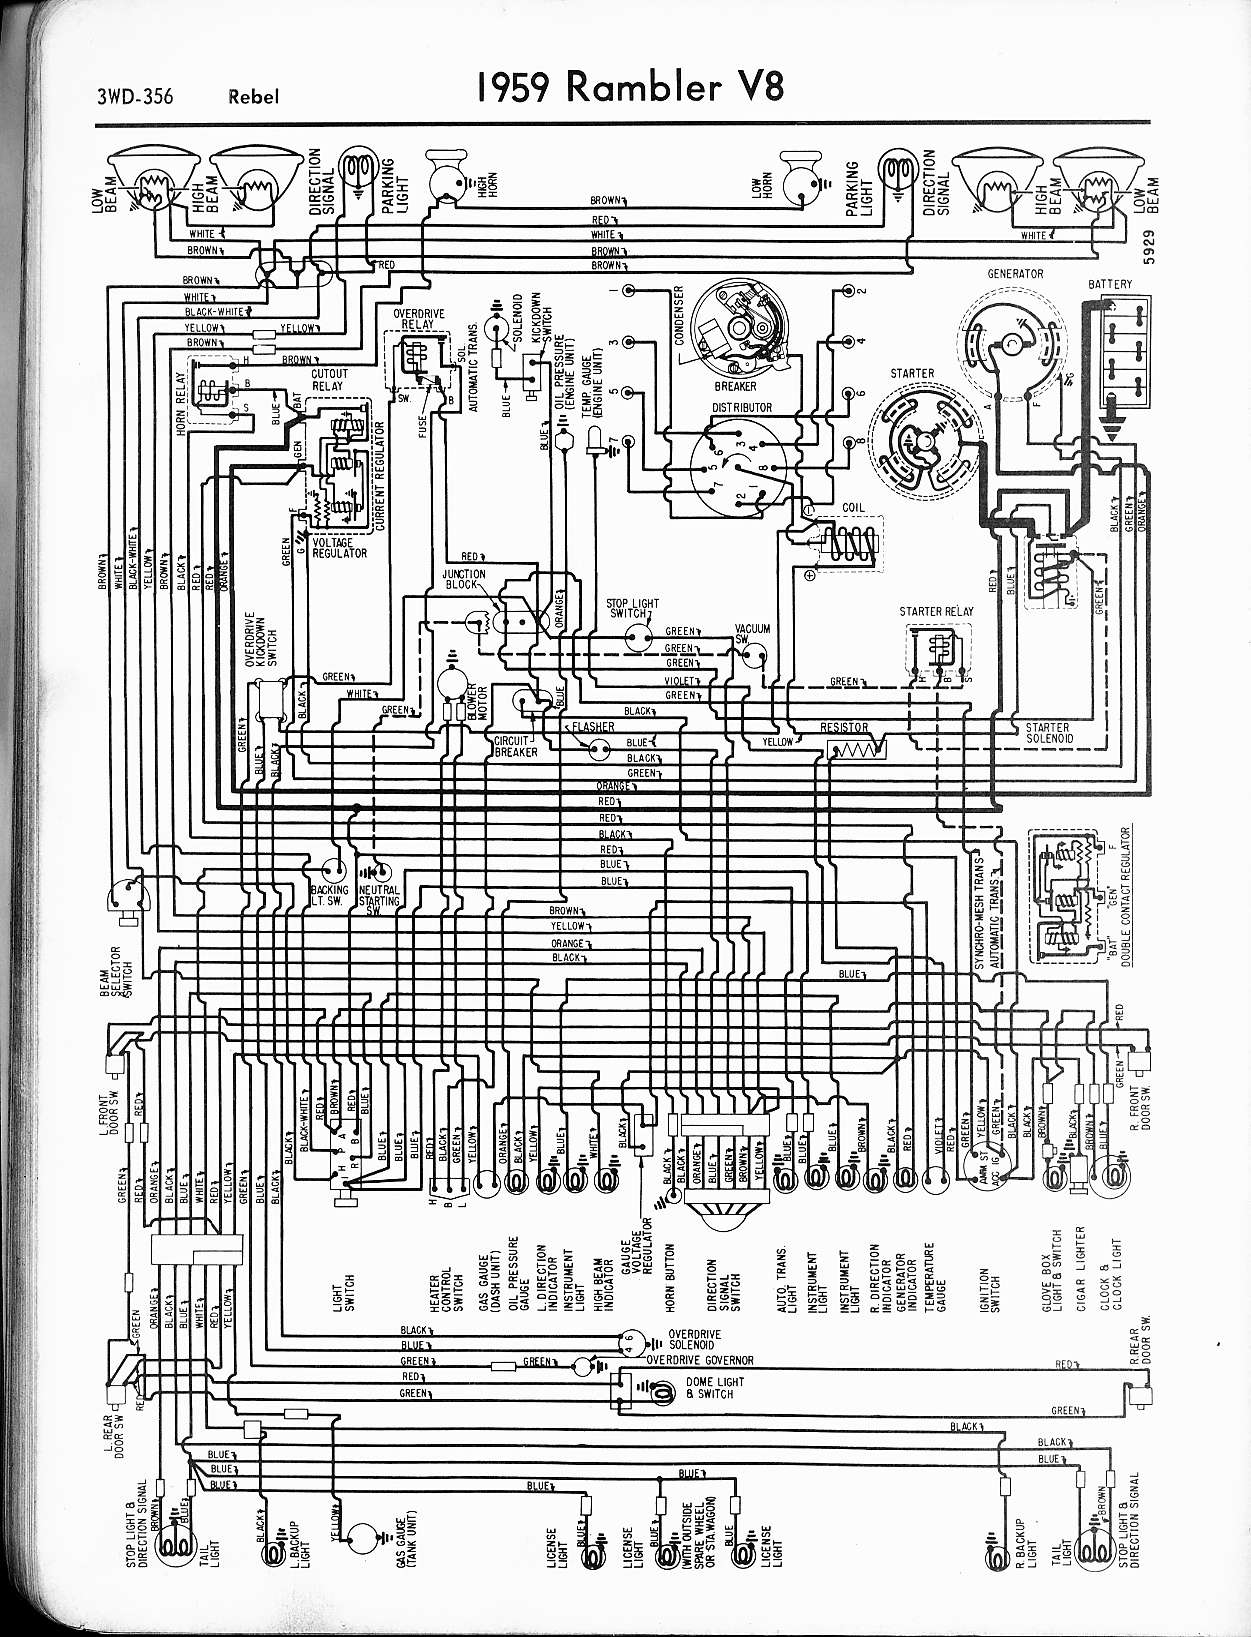 rambler wiring diagrams the old car manual project rh oldcarmanualproject com 1968 AMC Rebel SST 1968 AMC Rebel SST